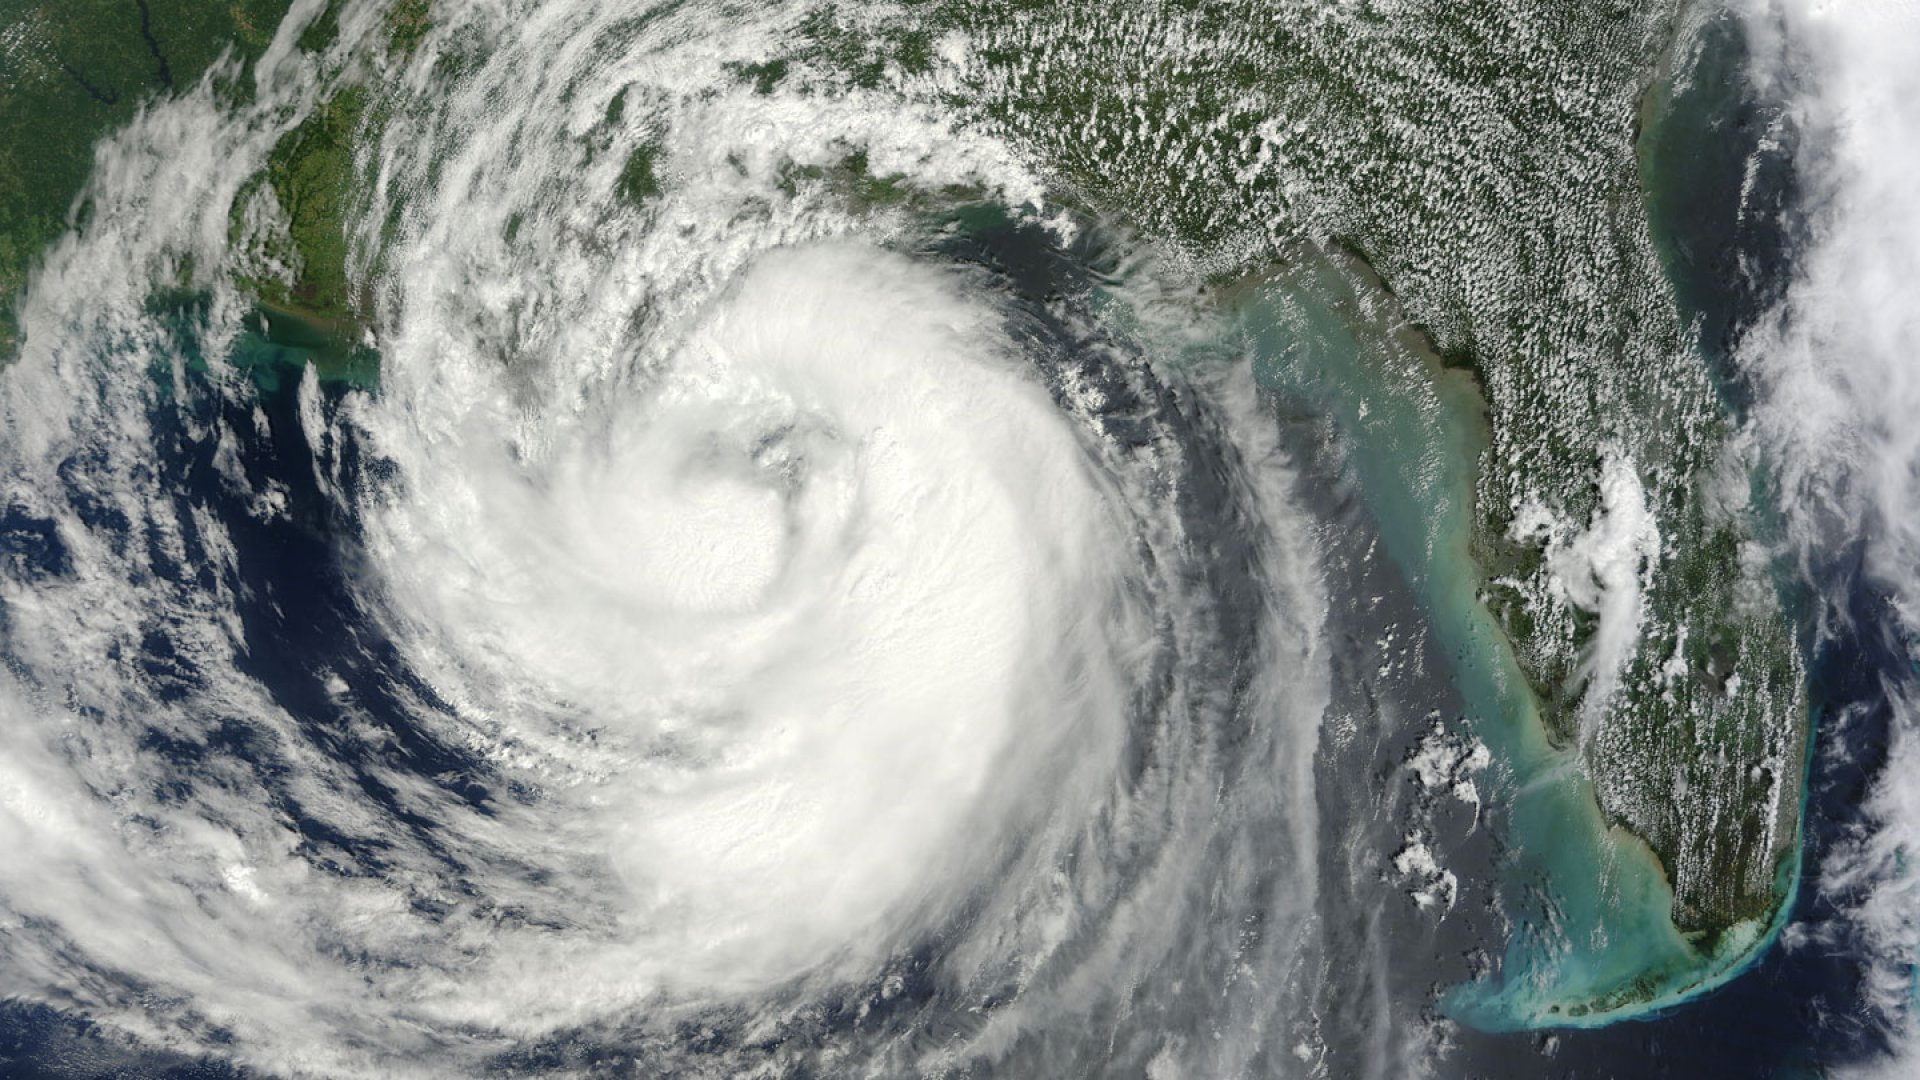 NASA's Terra satellite captured this image of Tropical Storm Isaac on Aug. 28 as it was moving northwest through the Gulf of Mexico.